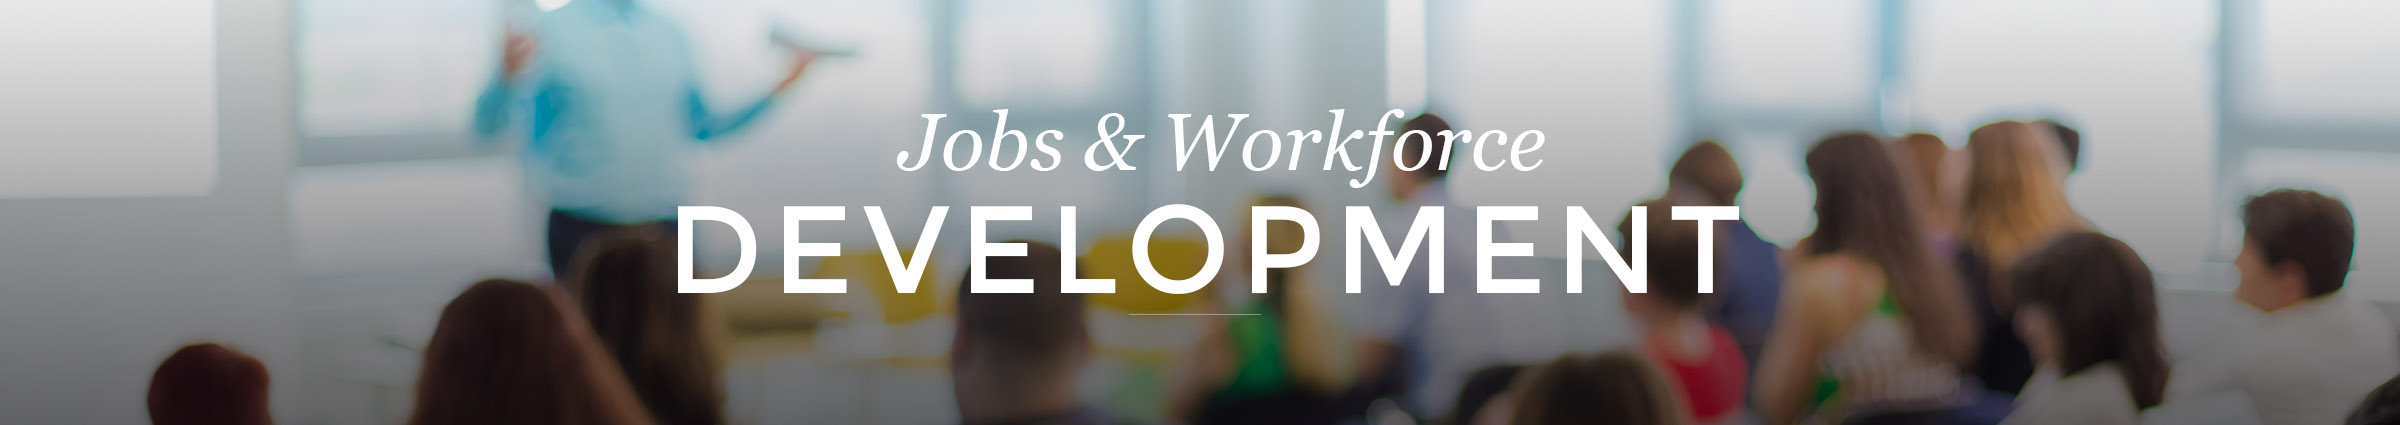 Jobs and Workforce Development